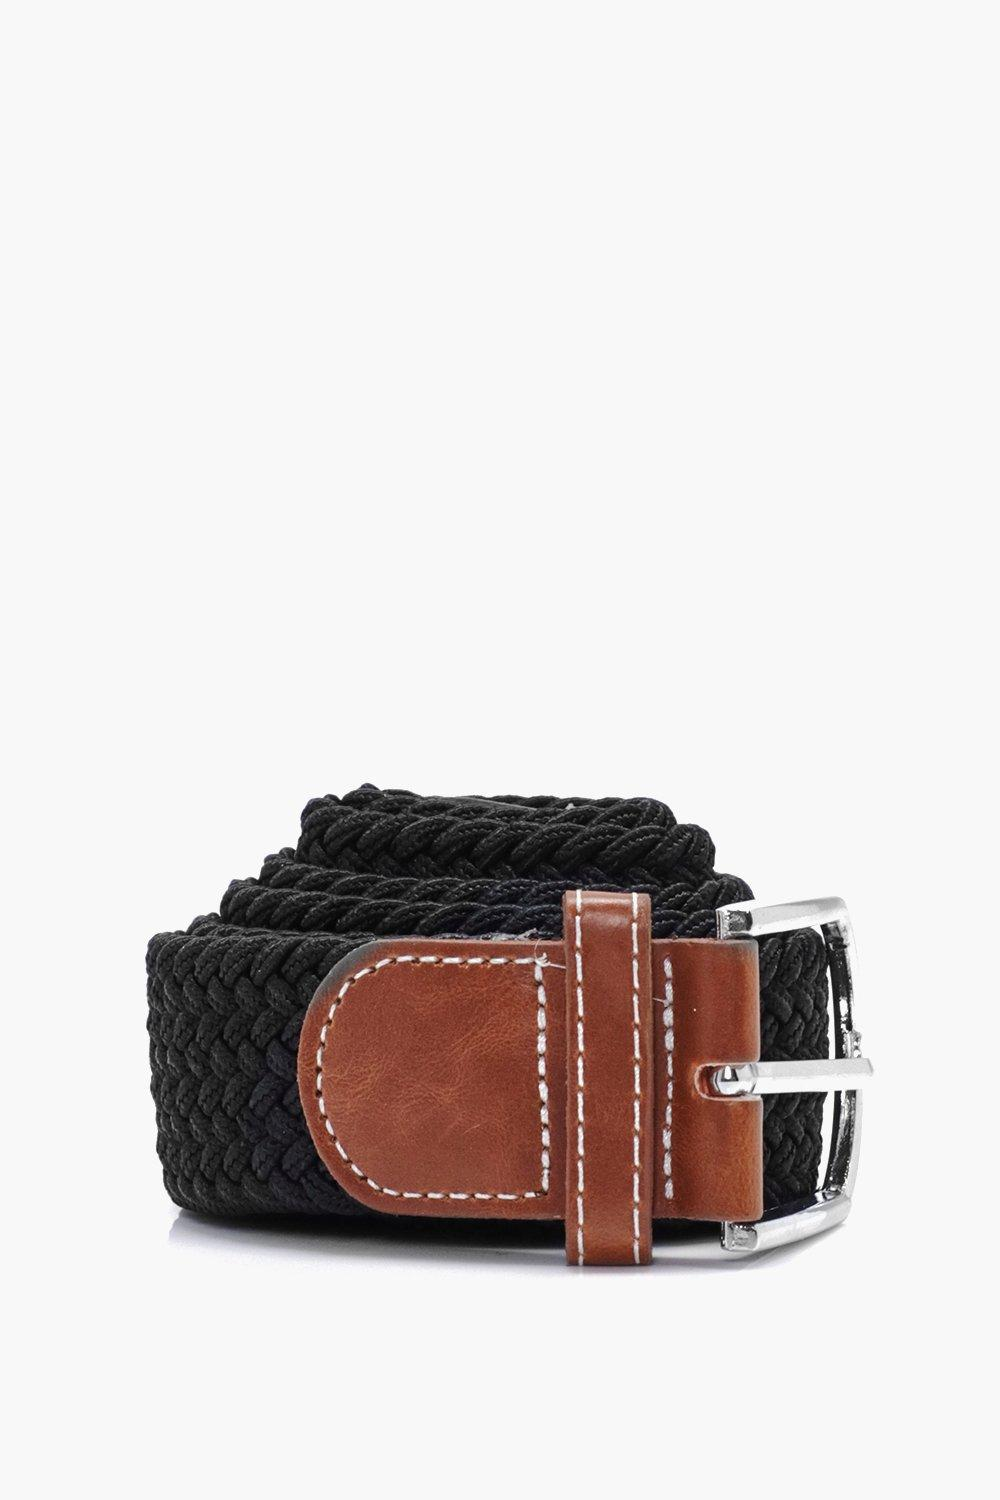 Plaited Belt - black - Stretch Plaited Belt - blac